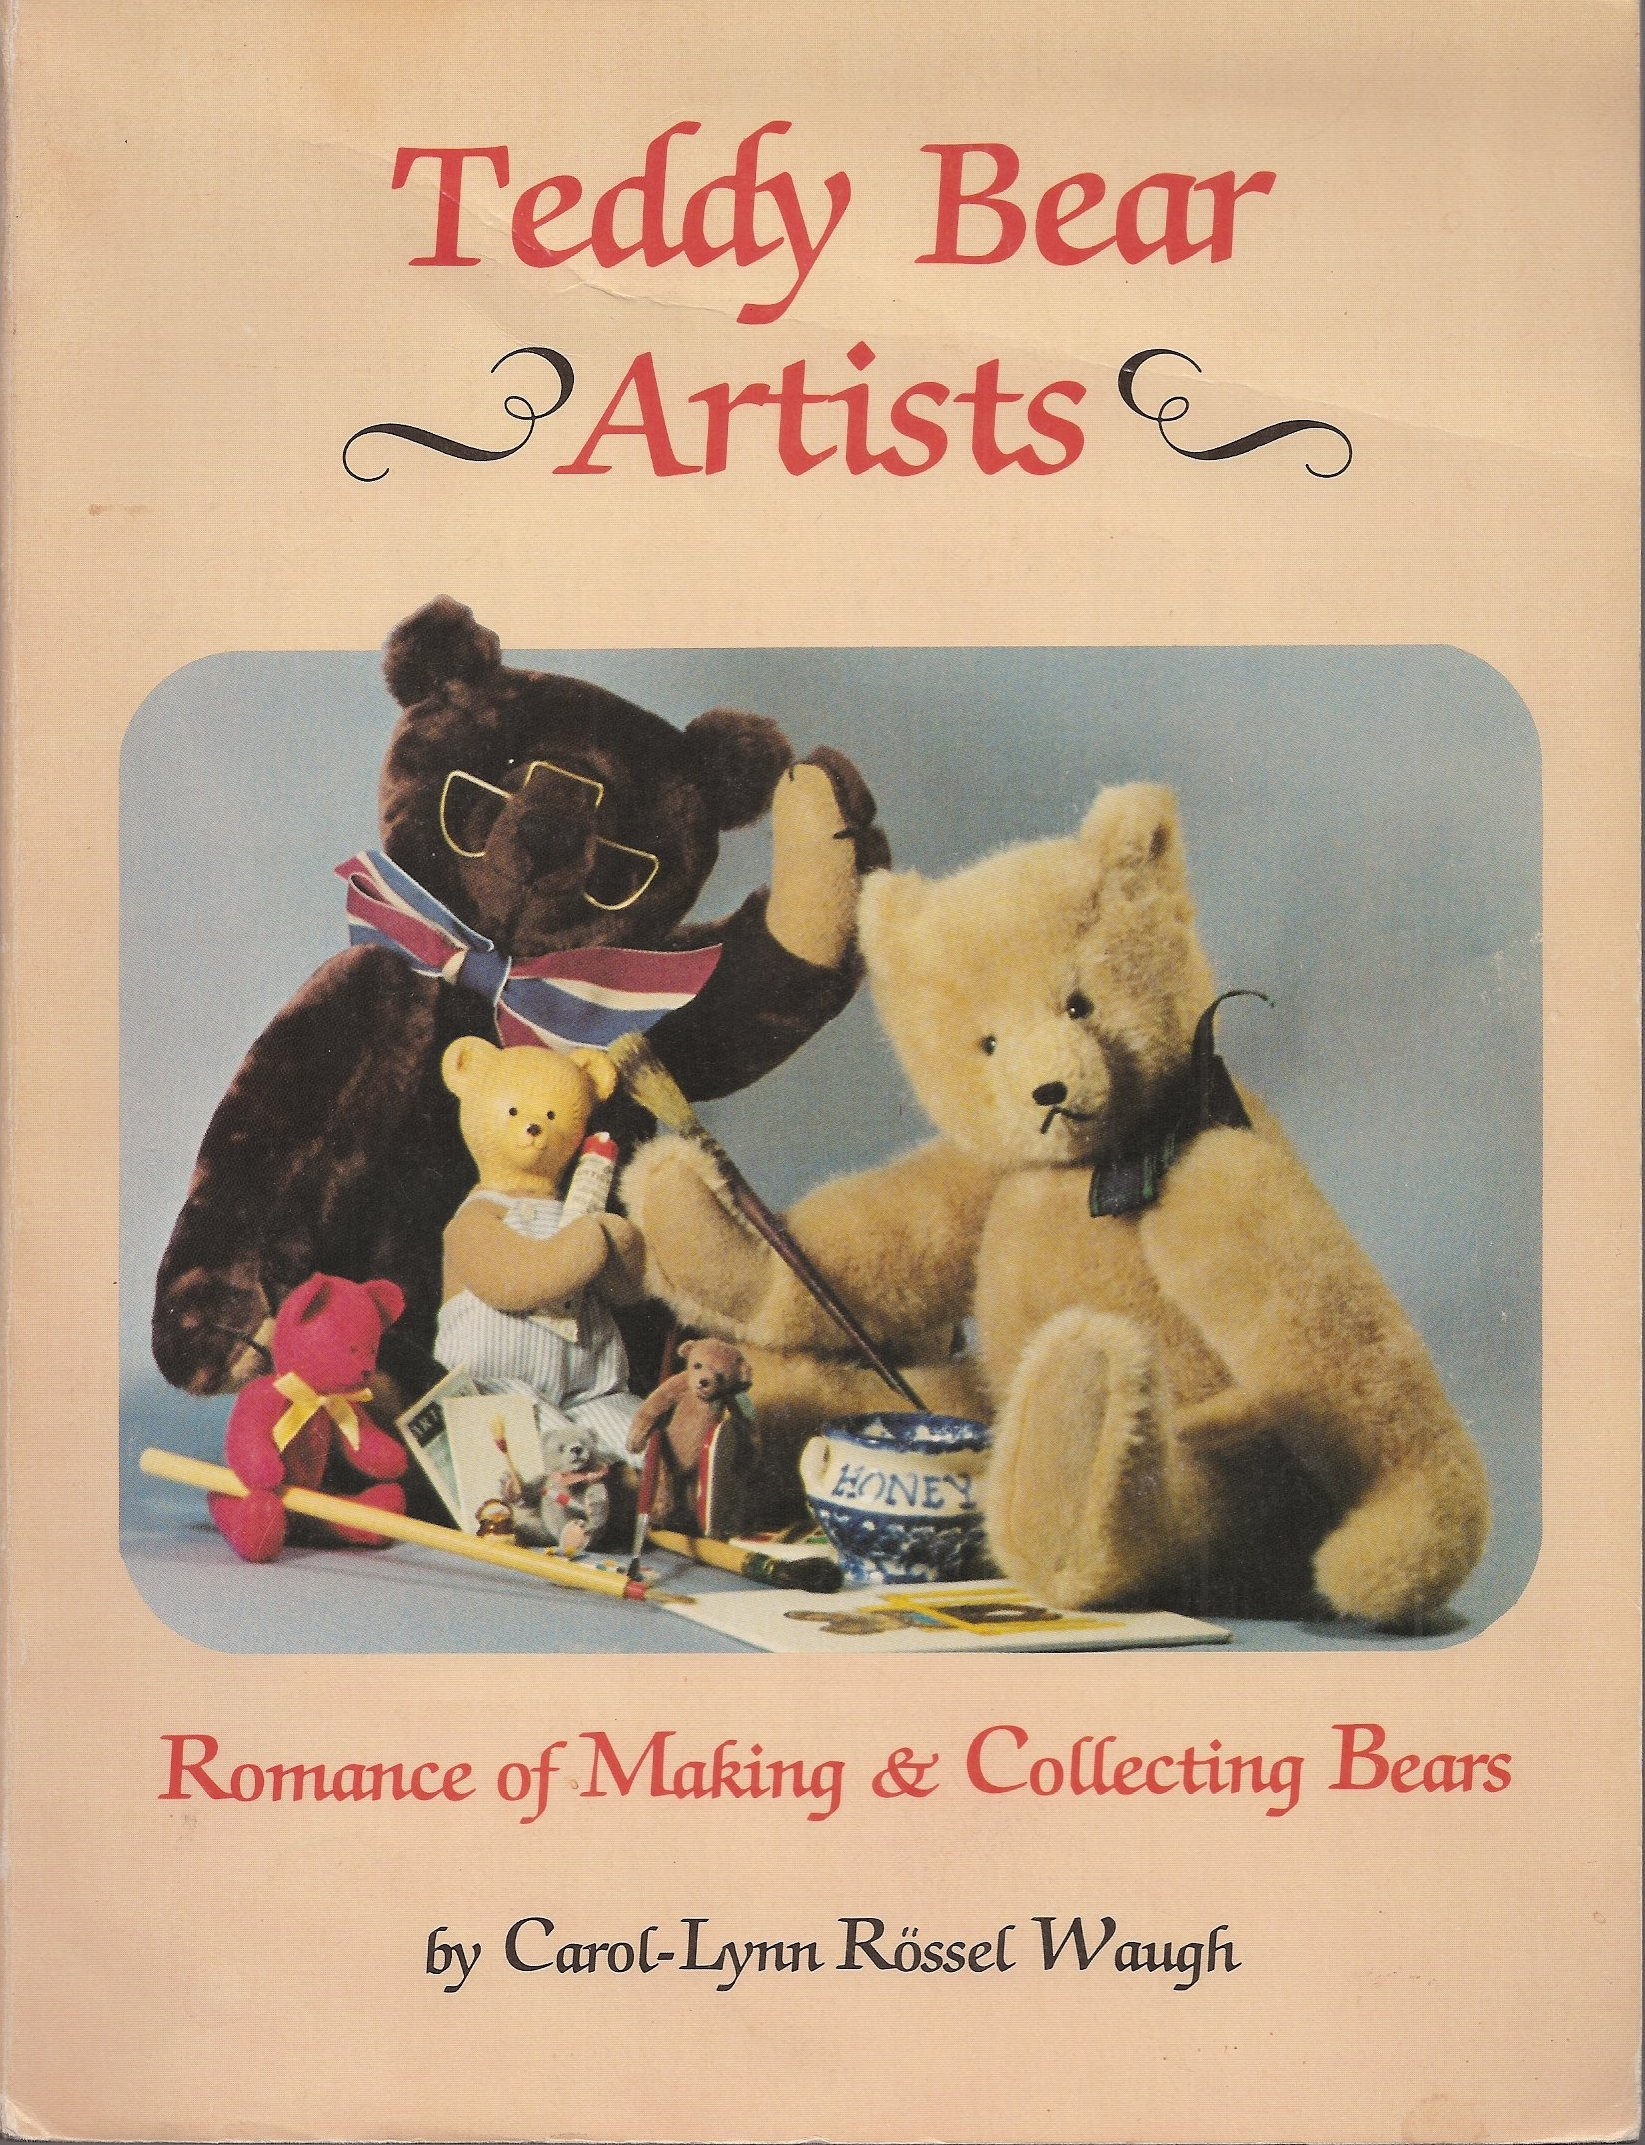 TEDDY BEAR ARTISTS Romance of Making & Collecting Bears